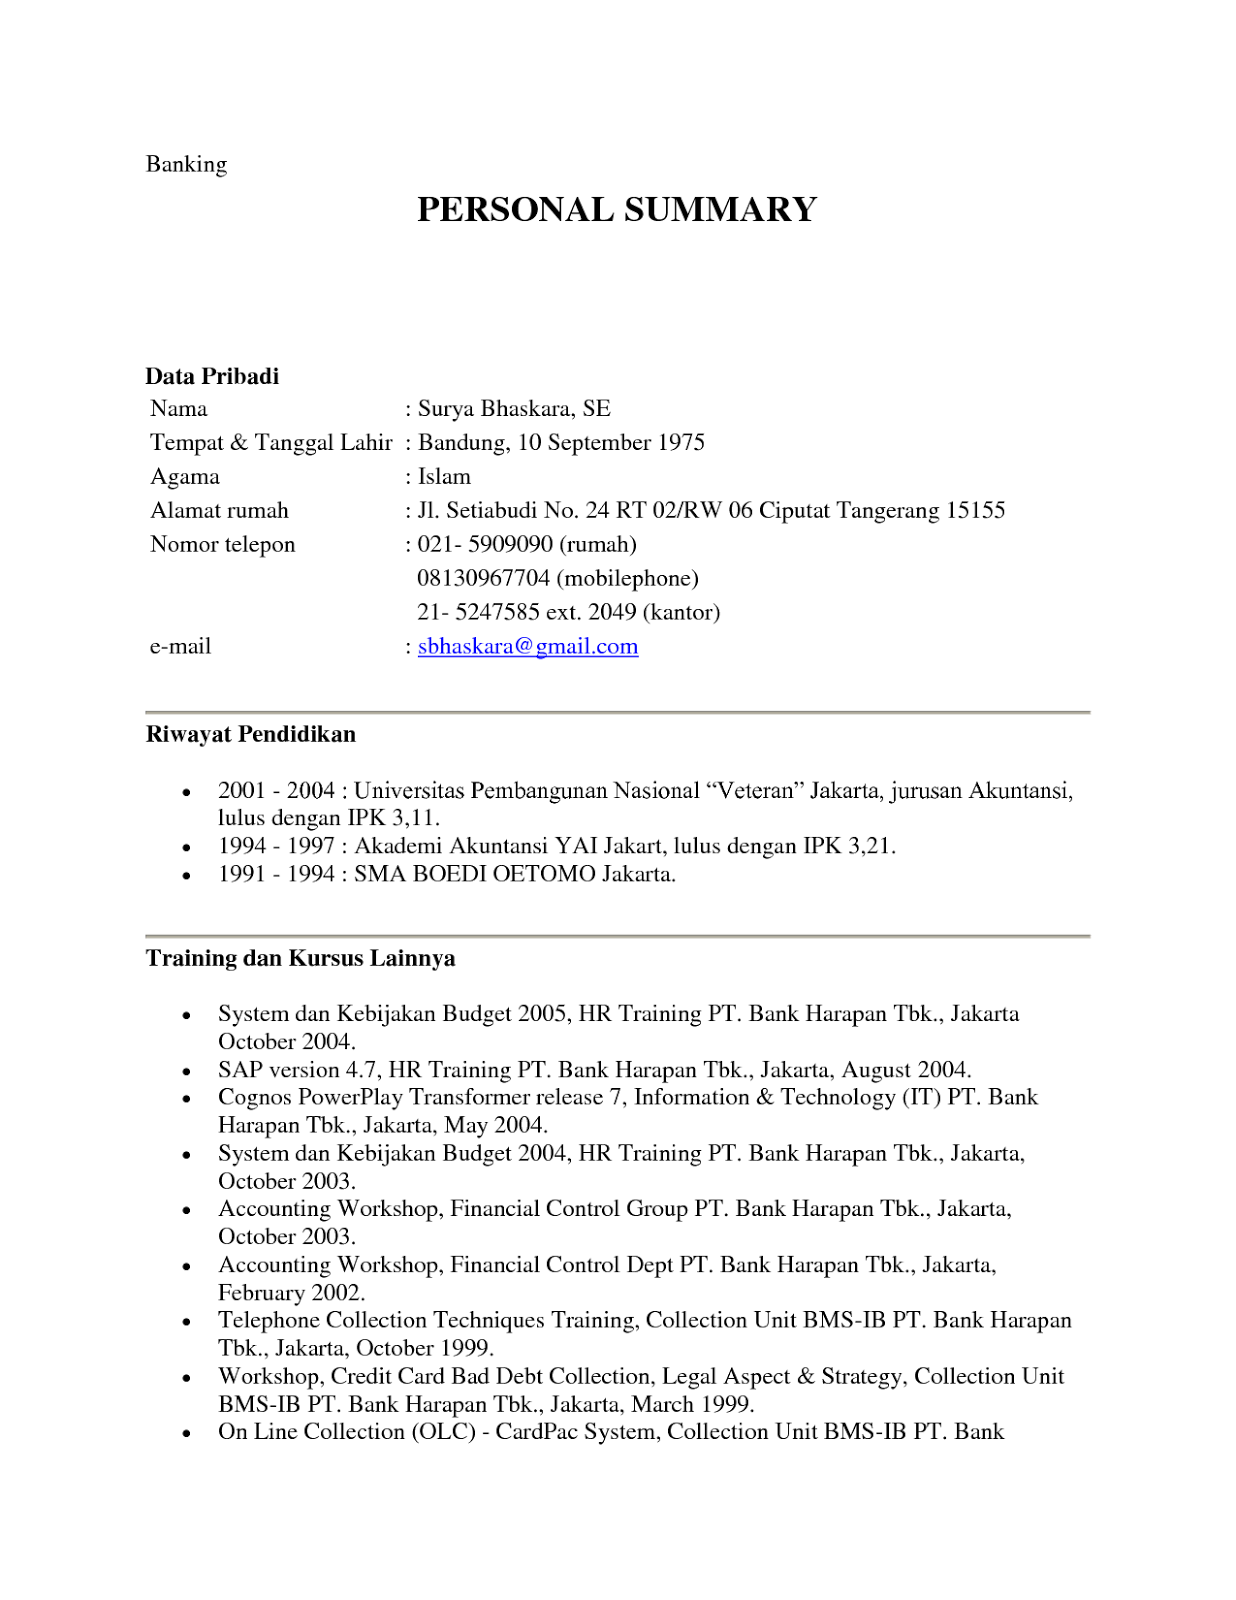 Contoh Curriculum Vitae Guru Free Resume Examples Samples For